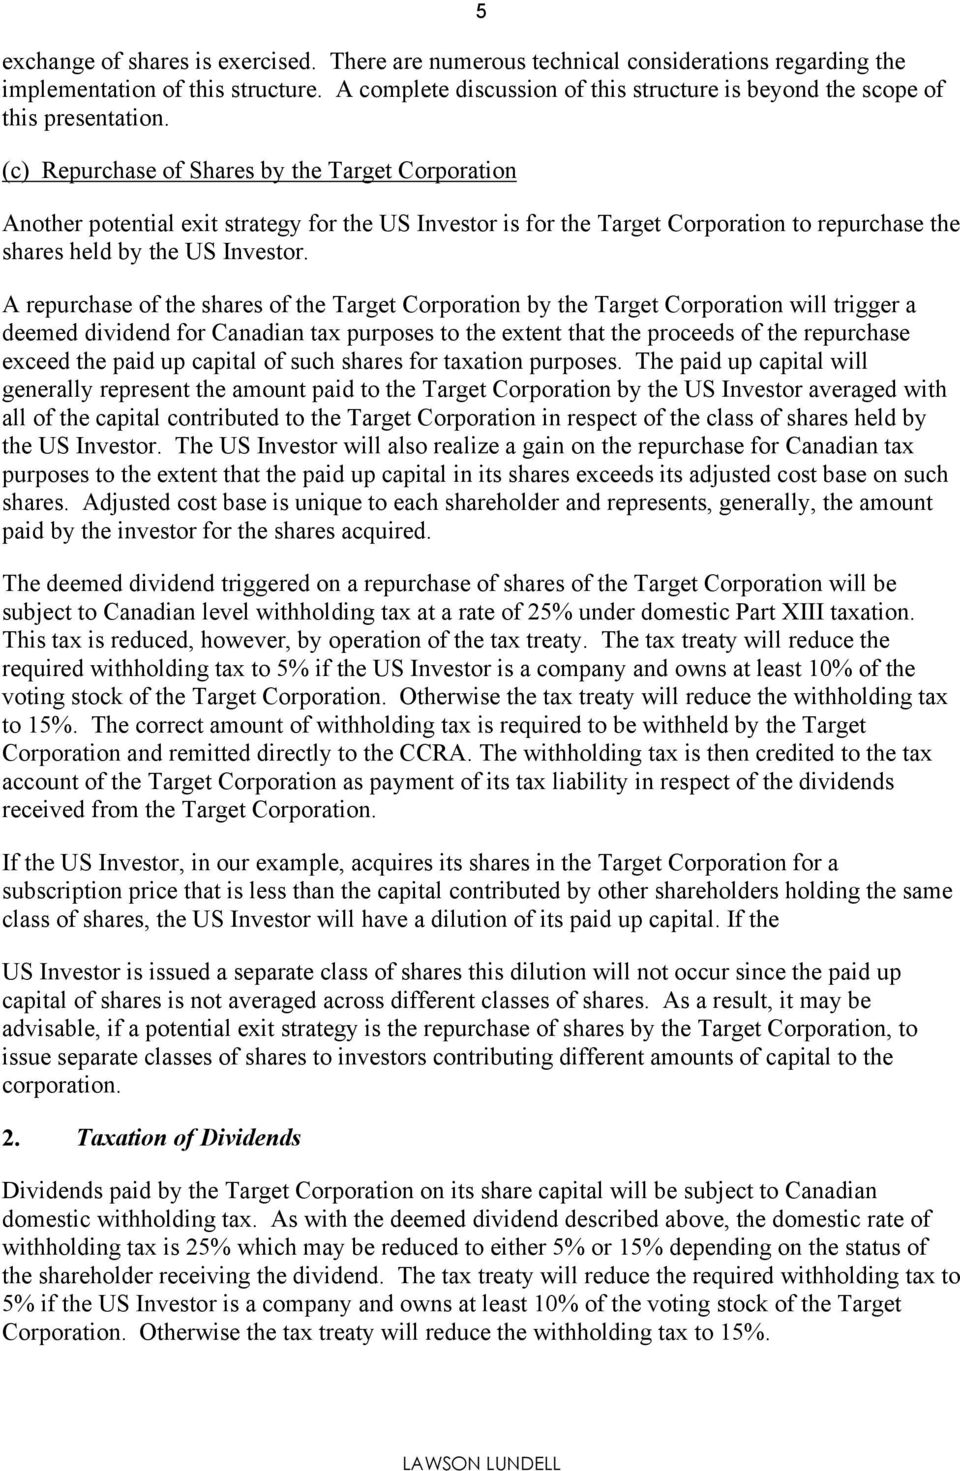 (c) Repurchase of Shares by the Target Corporation Another potential exit strategy for the US Investor is for the Target Corporation to repurchase the shares held by the US Investor.